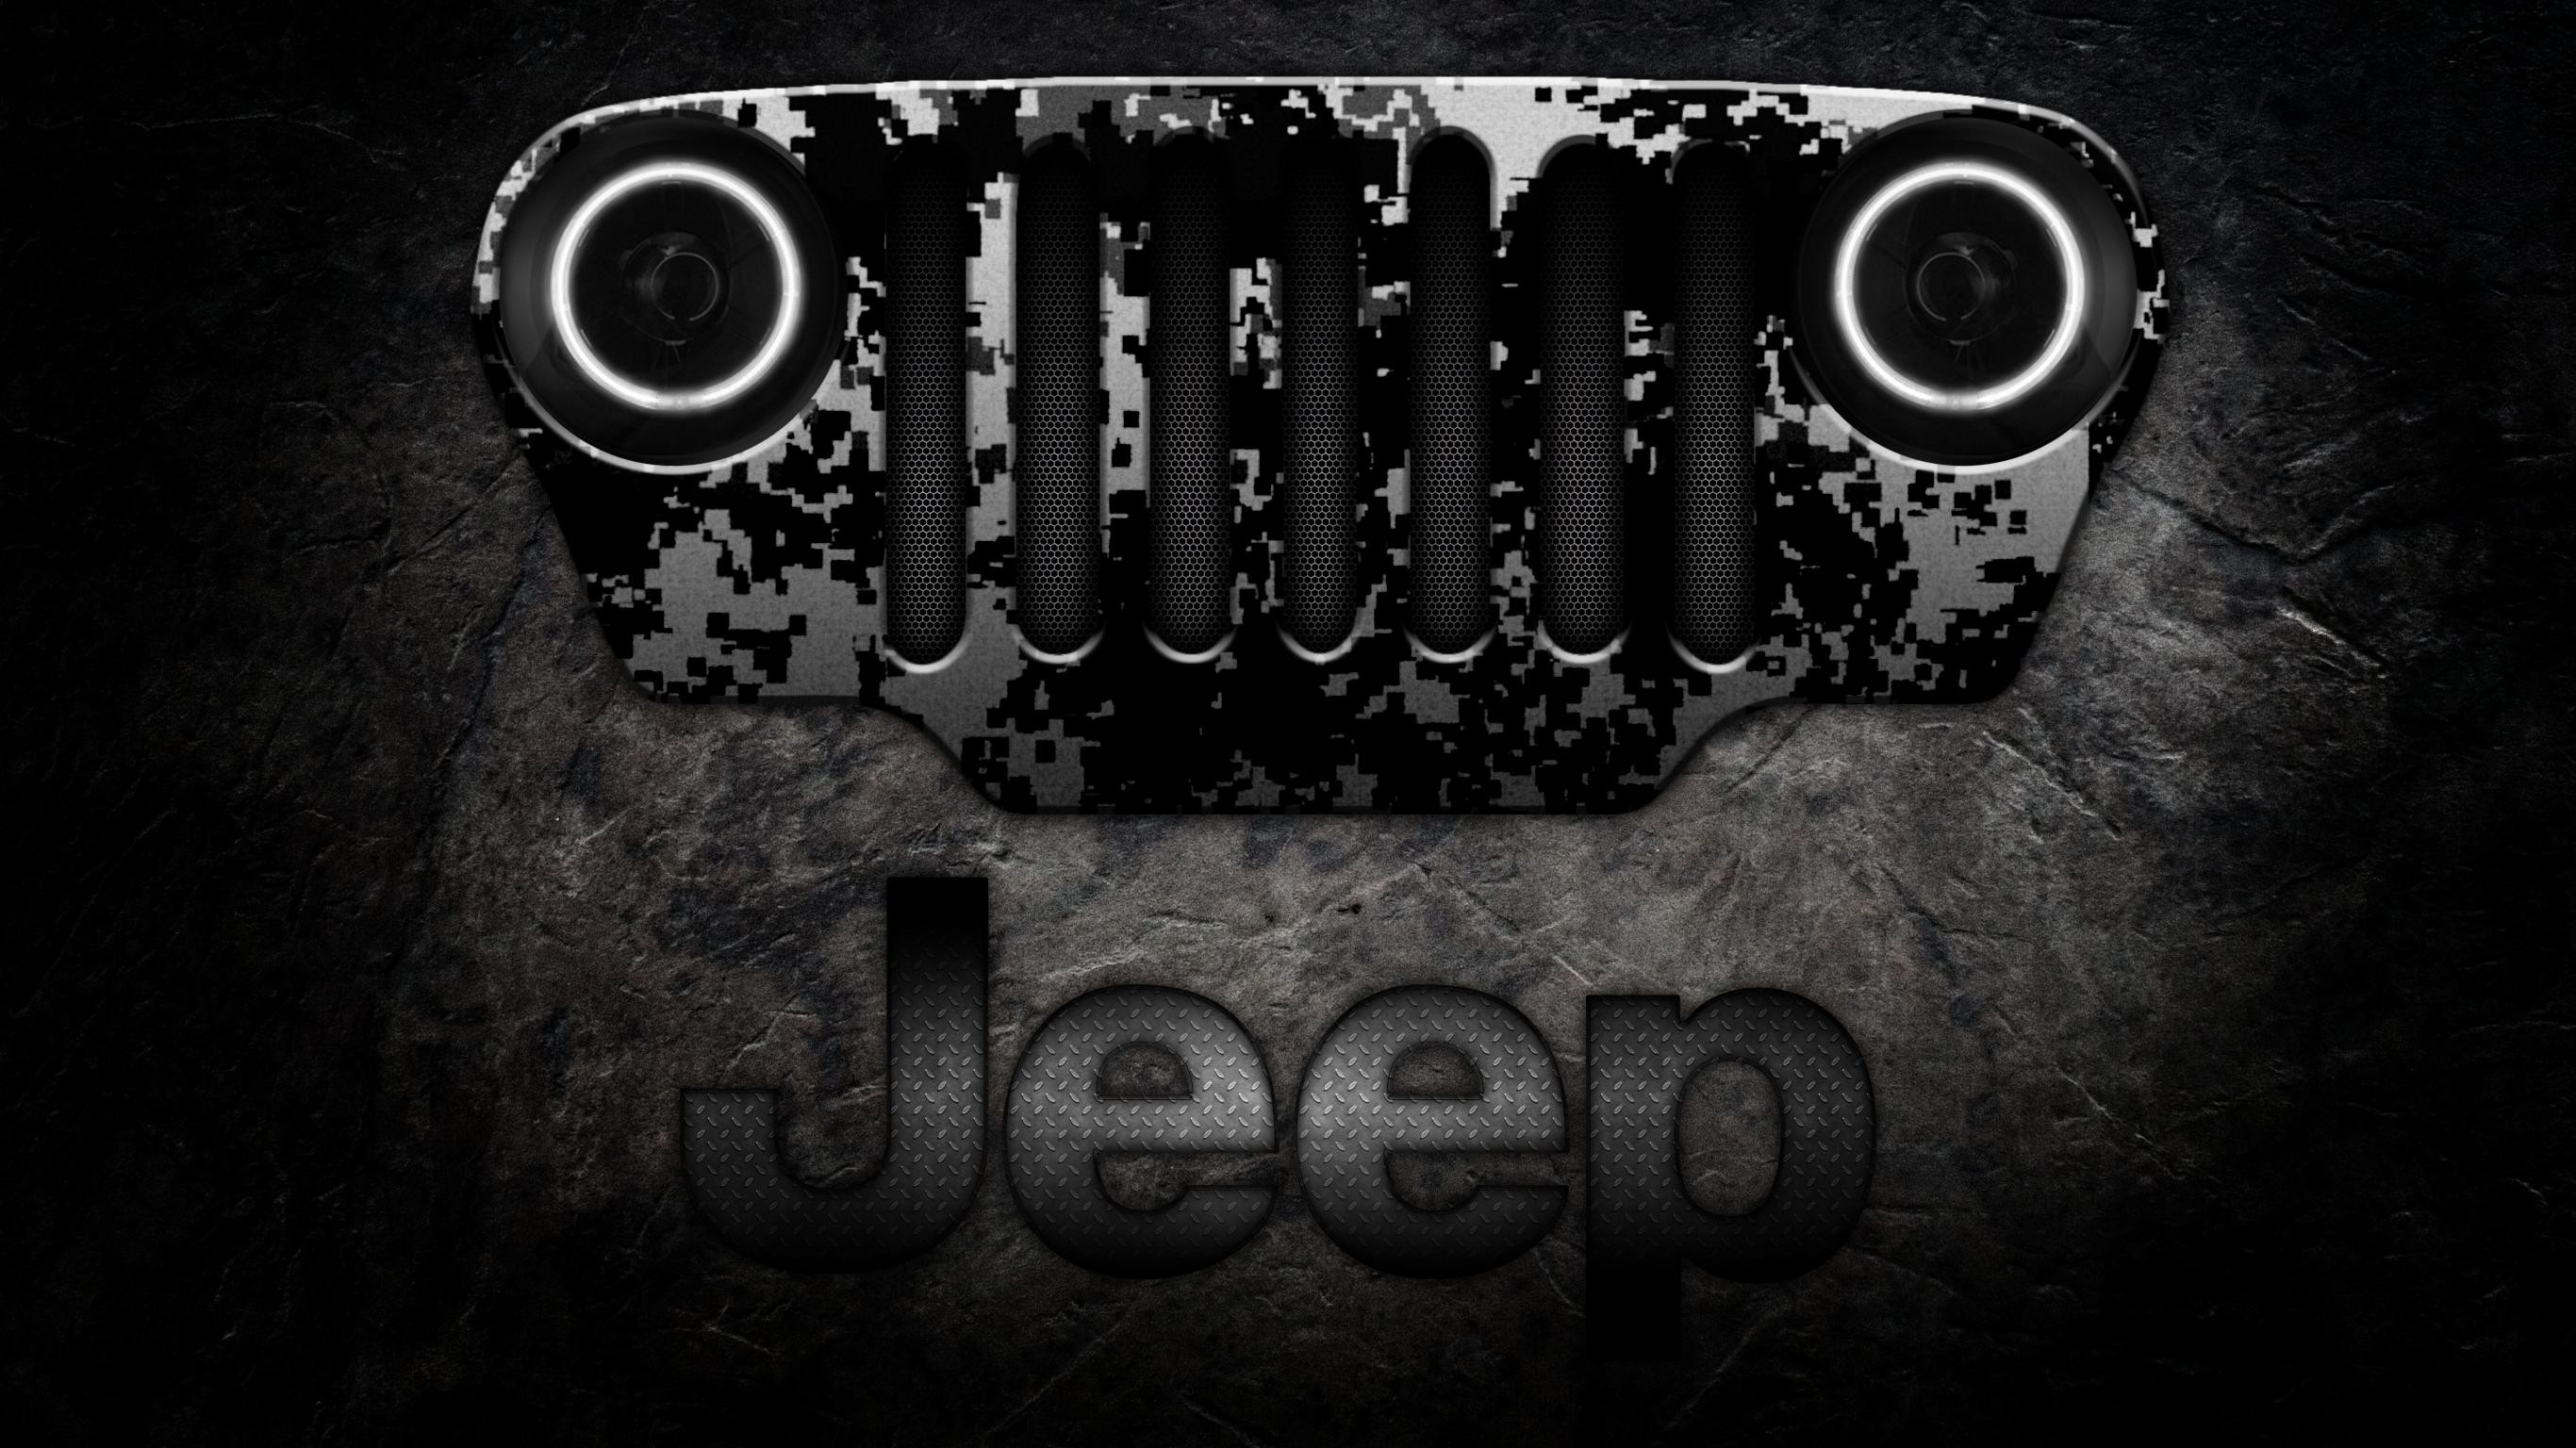 Wallpapers Of Cool Girls Jeep Logo Wallpaper 61 Images